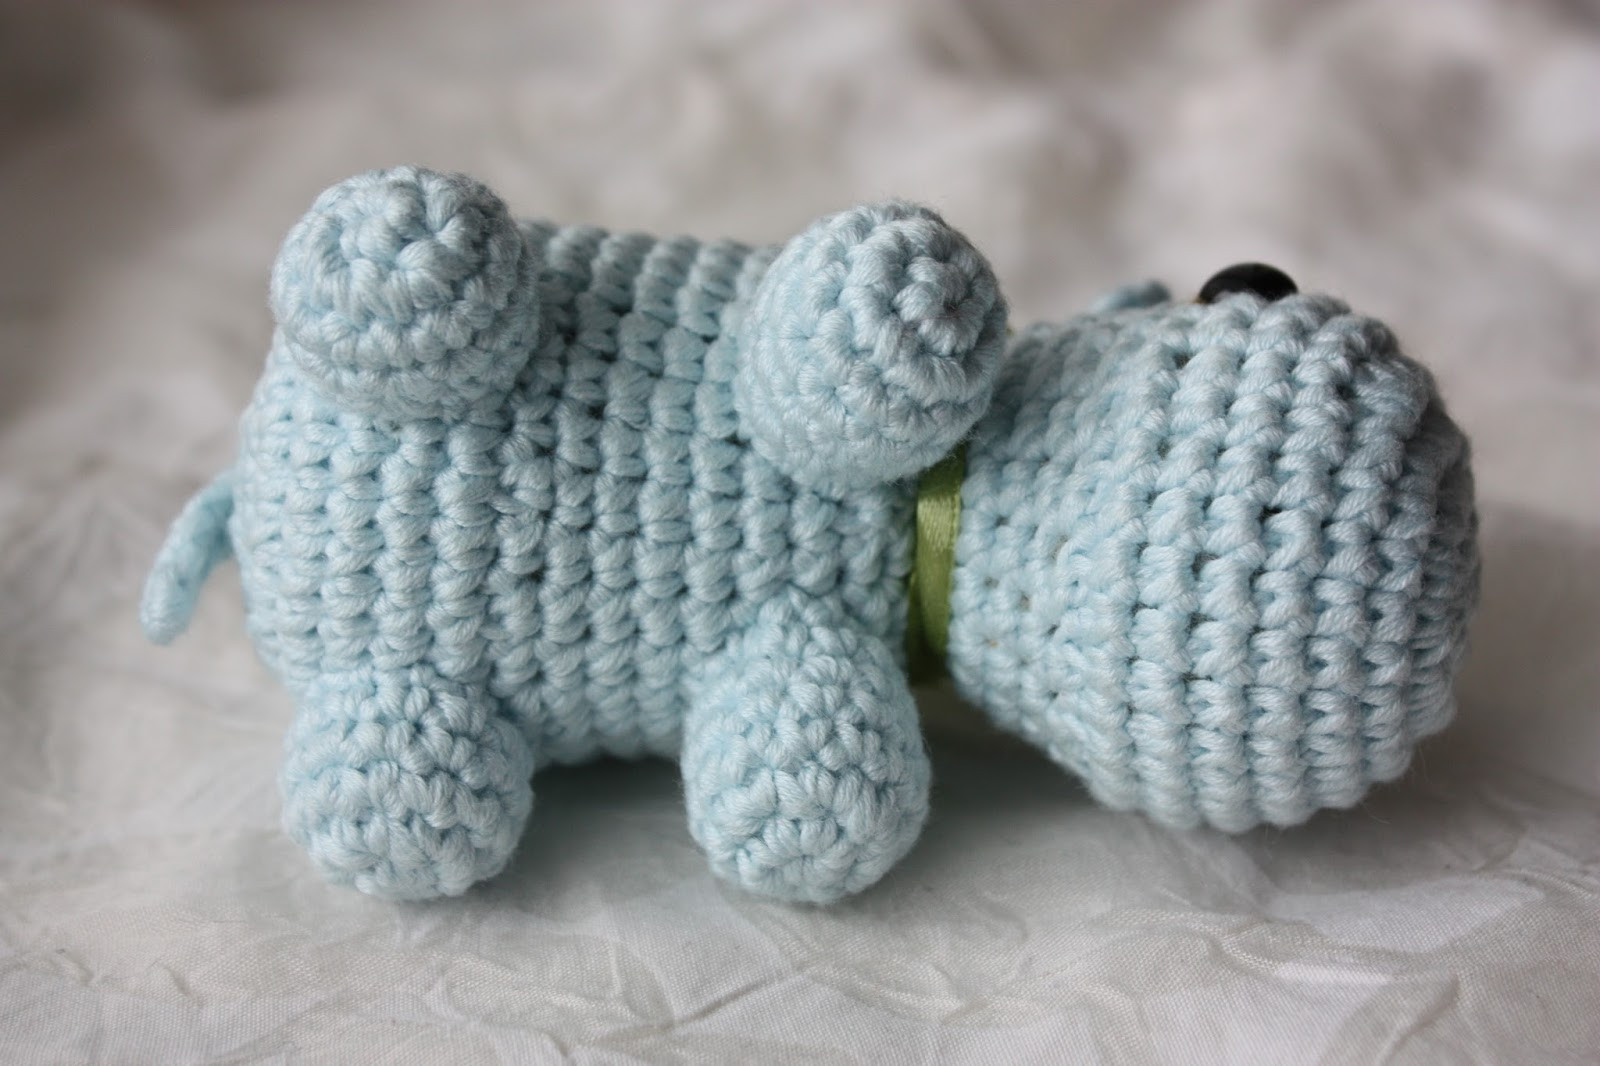 Crochet Hippo Pattern Free Awesome Happyamigurumi Amigurumi Hippo Pattern Pdf Amigurumi Of Awesome 40 Pics Crochet Hippo Pattern Free